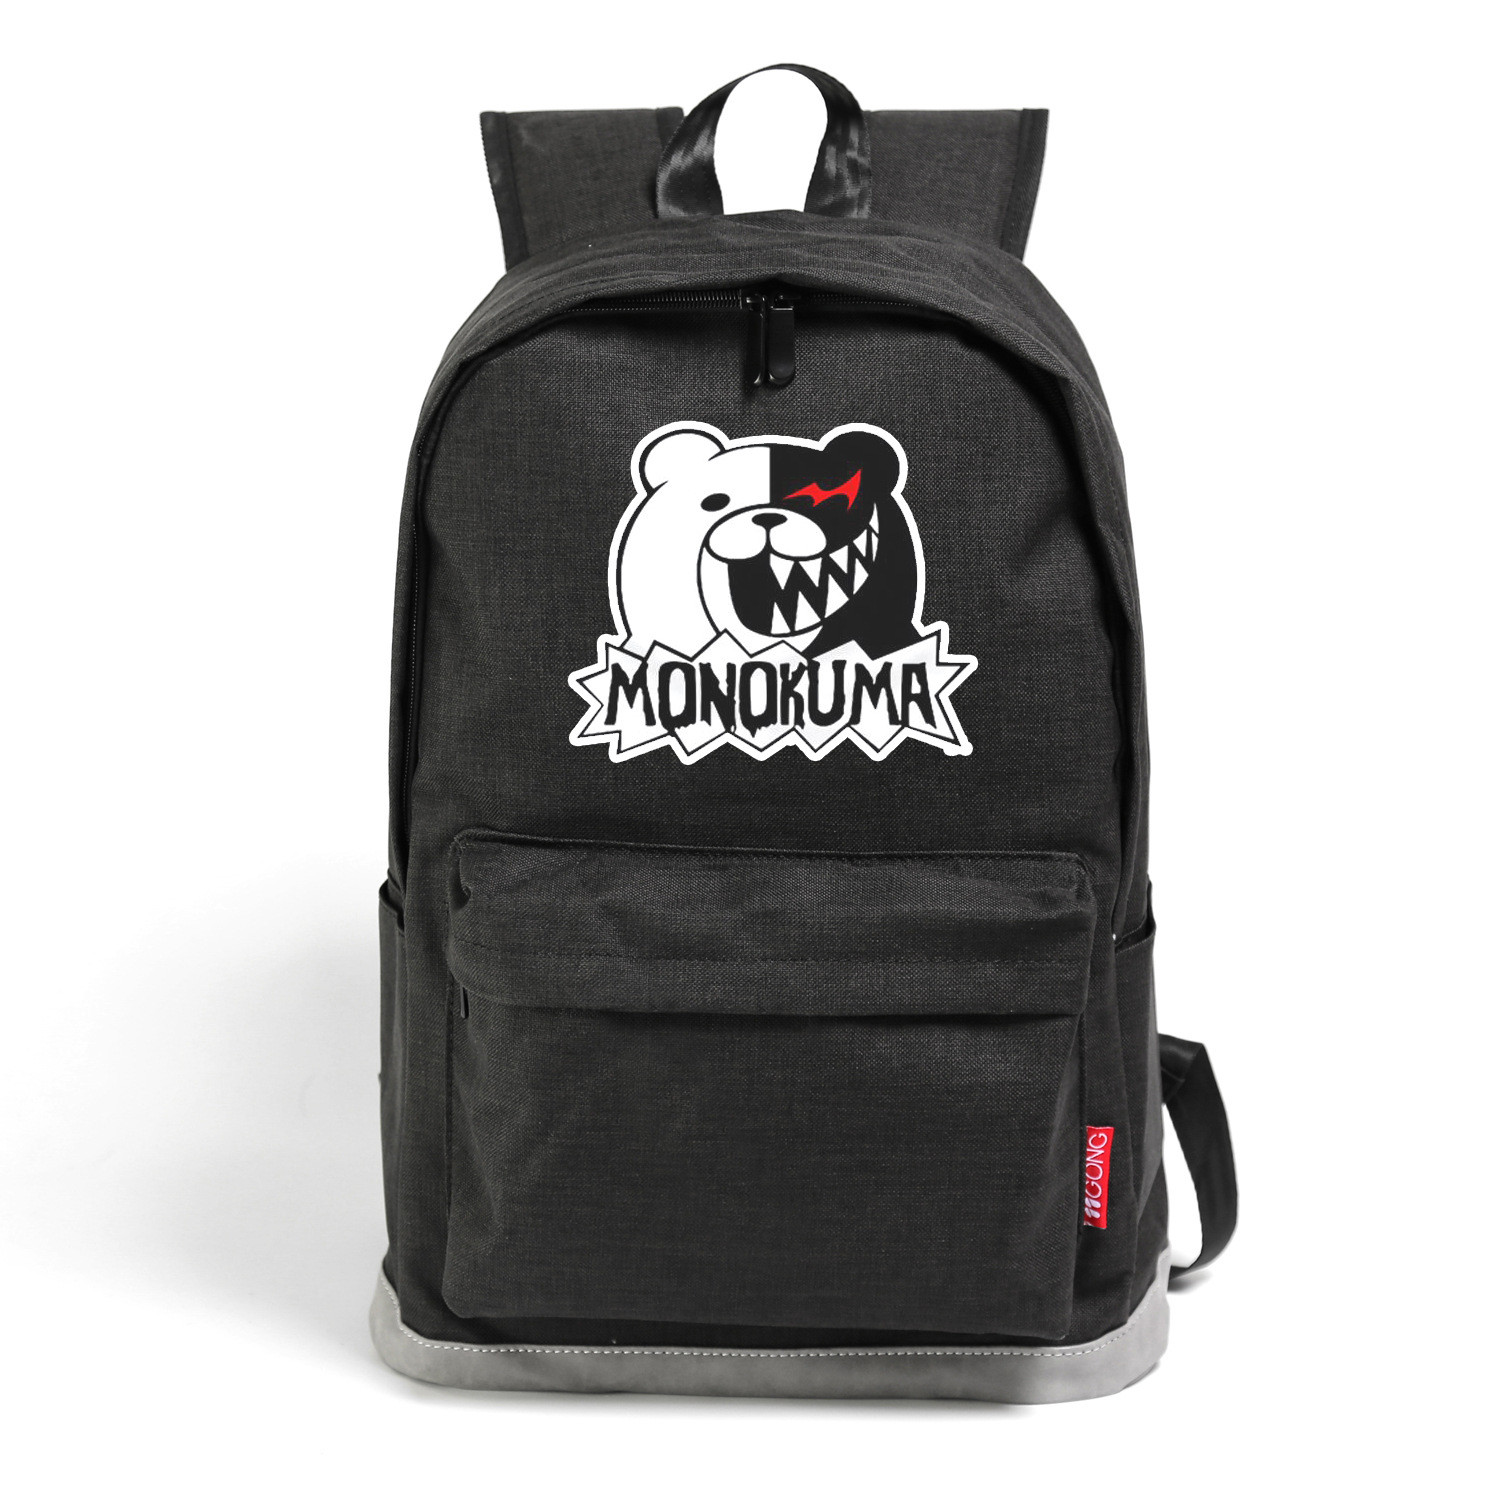 Anime Danganronpa Monokuma Cosplay Cloth Shoulder Bag Backpack Bags For School Purse Gif ...